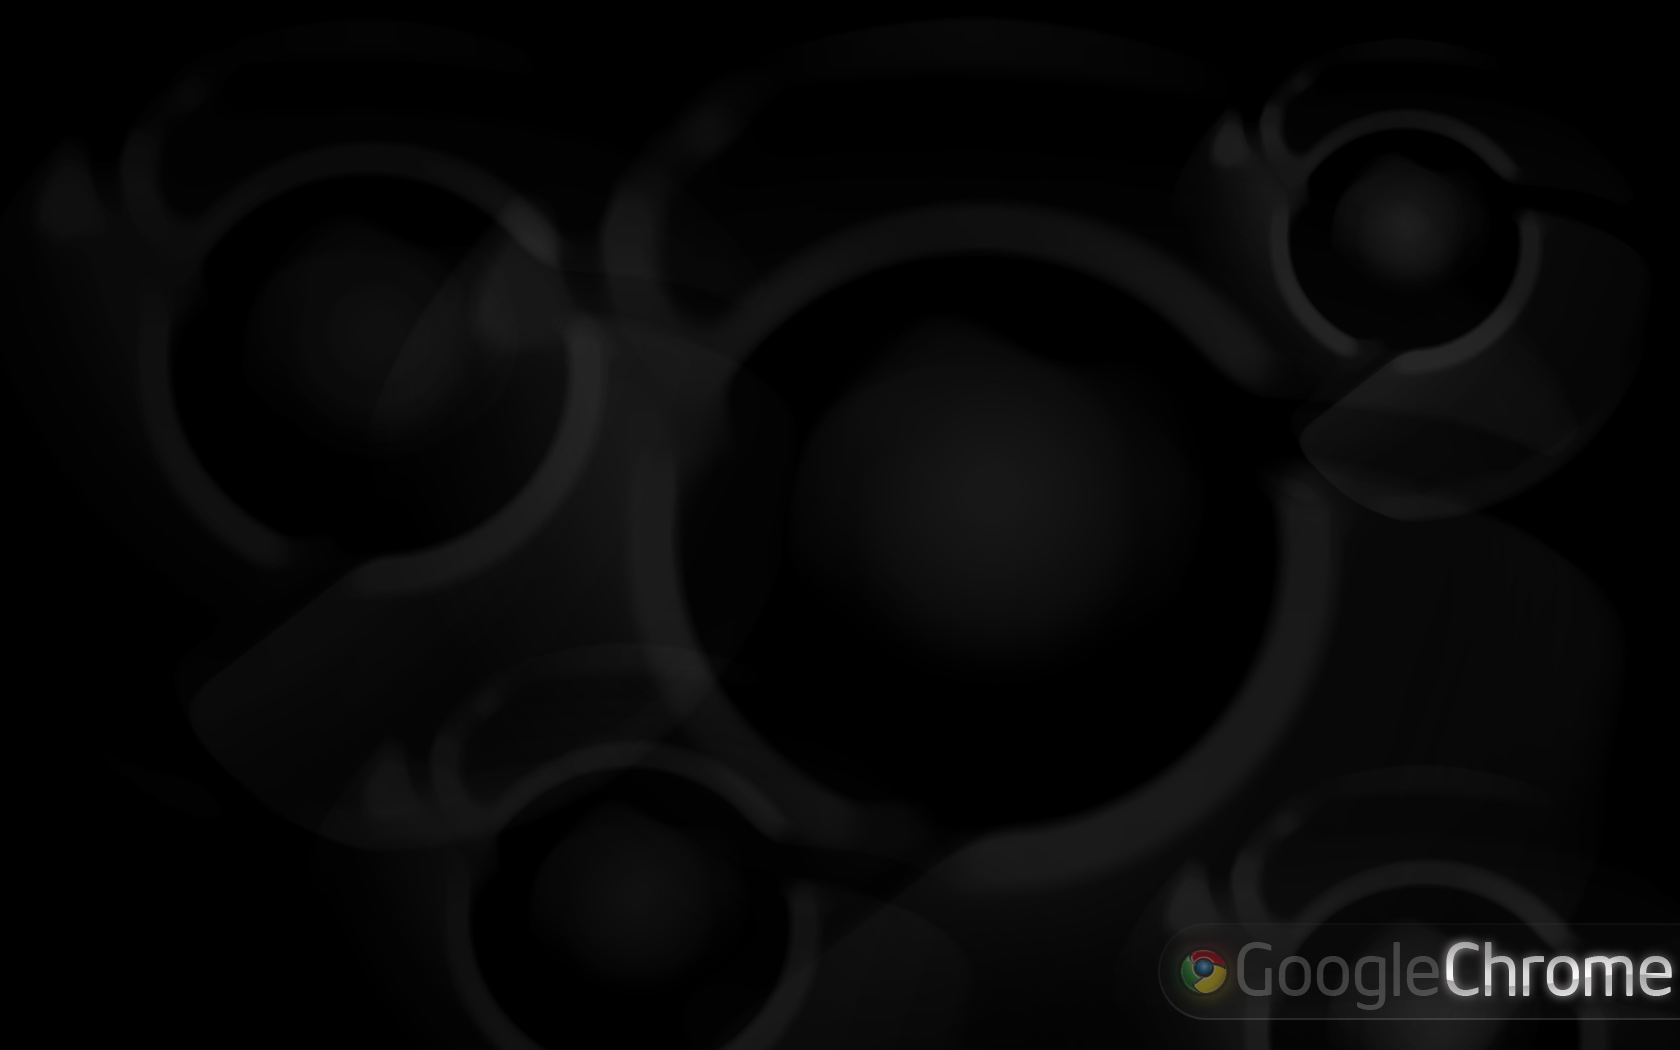 Google chrome themes in black - Hope You Enjoyed The List Don T Forget To Leave Your Feedback